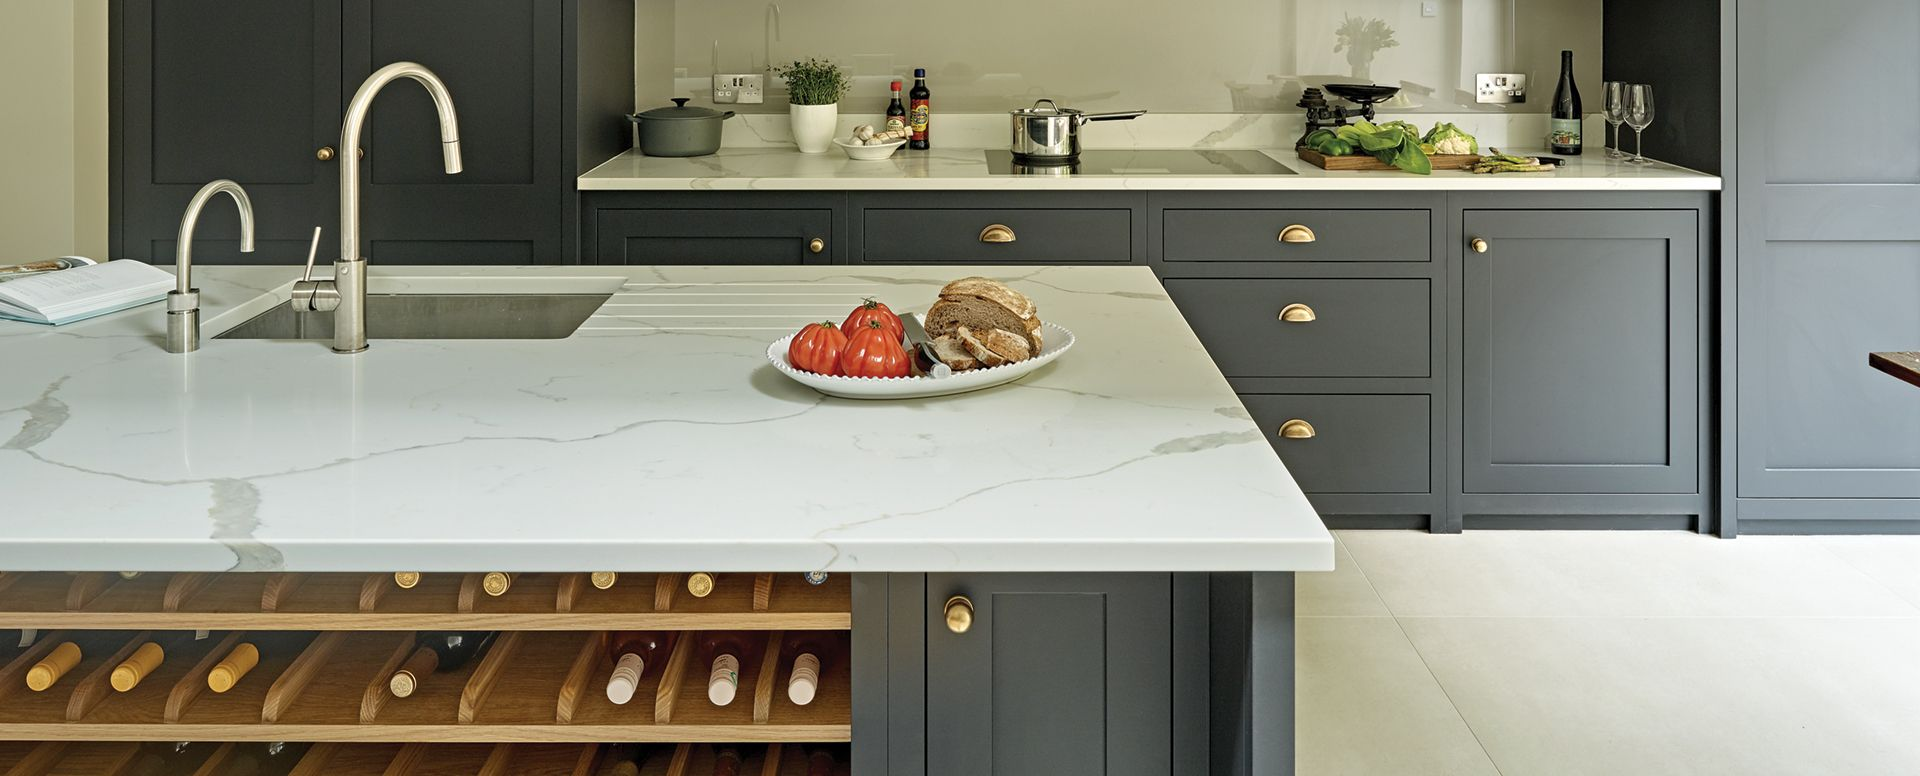 Battersea Kitchen Design  Stylish Shaker Kitchens by Brayer is part of Country Home Accessories Cabinets - View our Battersea kitchen  This kitchen design features dark shaker kitchen cabinets with burnished brass handles & grey Calacatta marbleeffect worktops